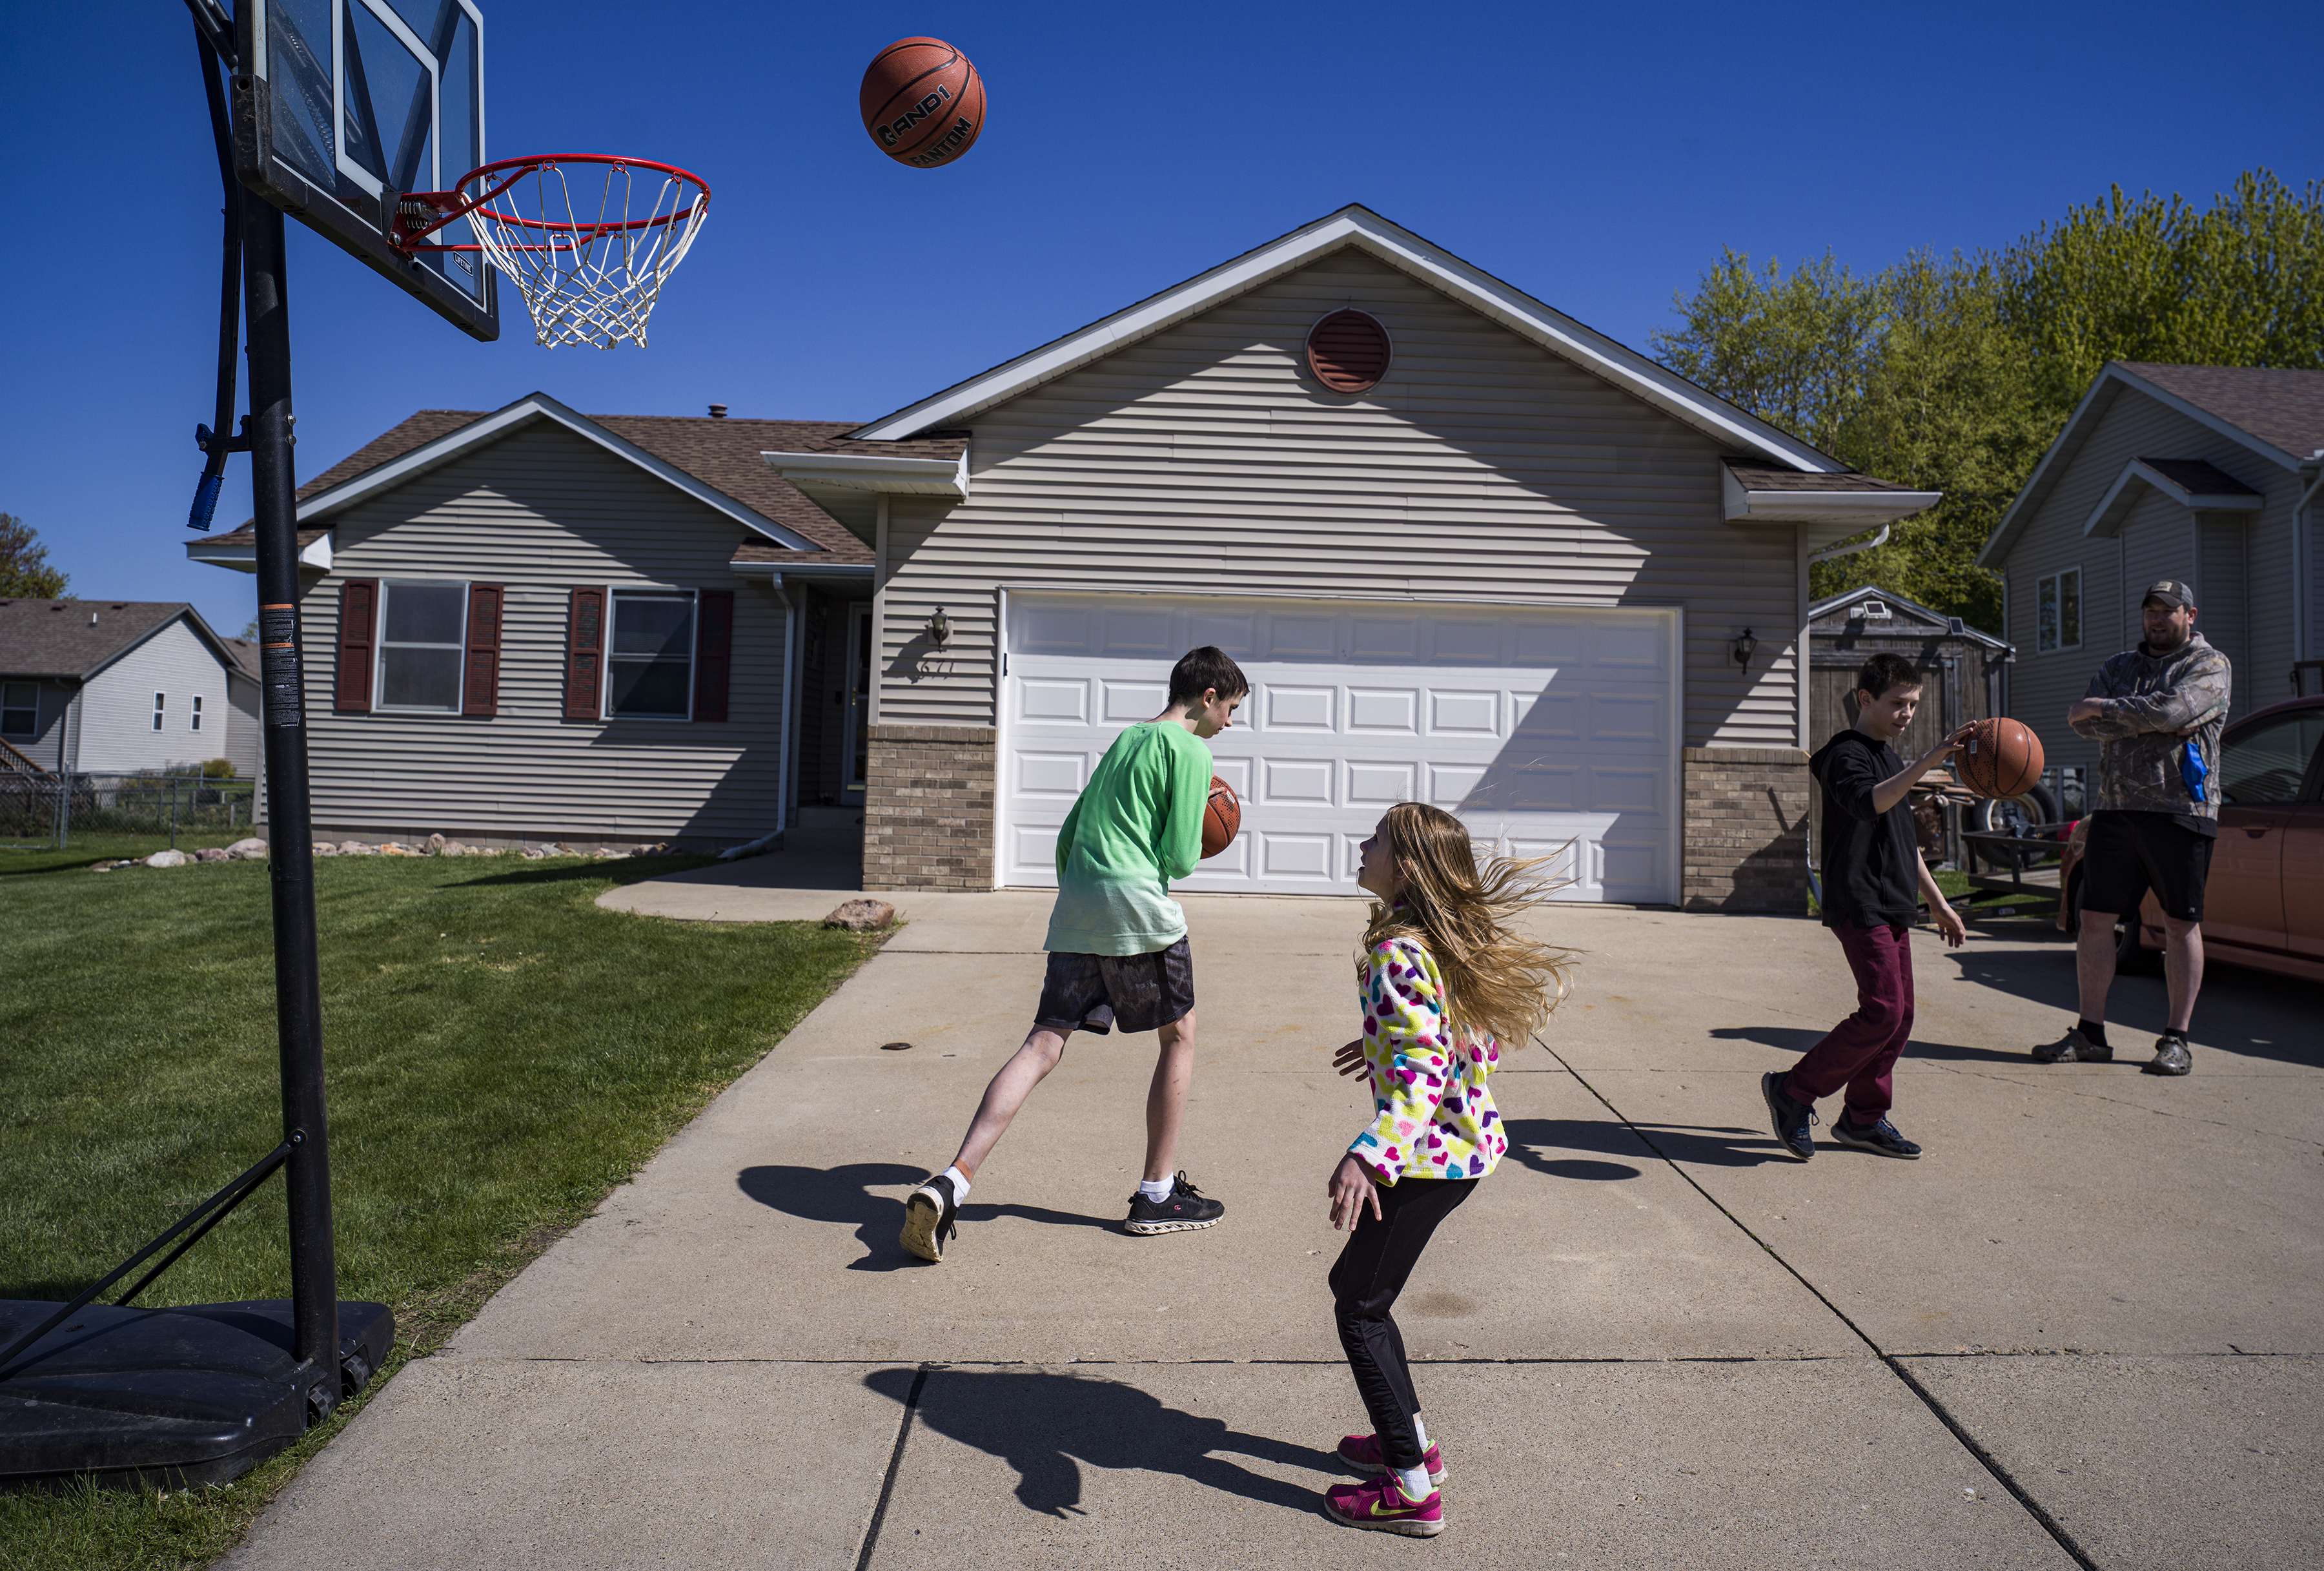 In Owatonna, MN on May 12, 2021, the Hadt siblings Abigail, 7, Carter, 11, Riley,14(green) play some hoops during recess while dad Andrew watches.